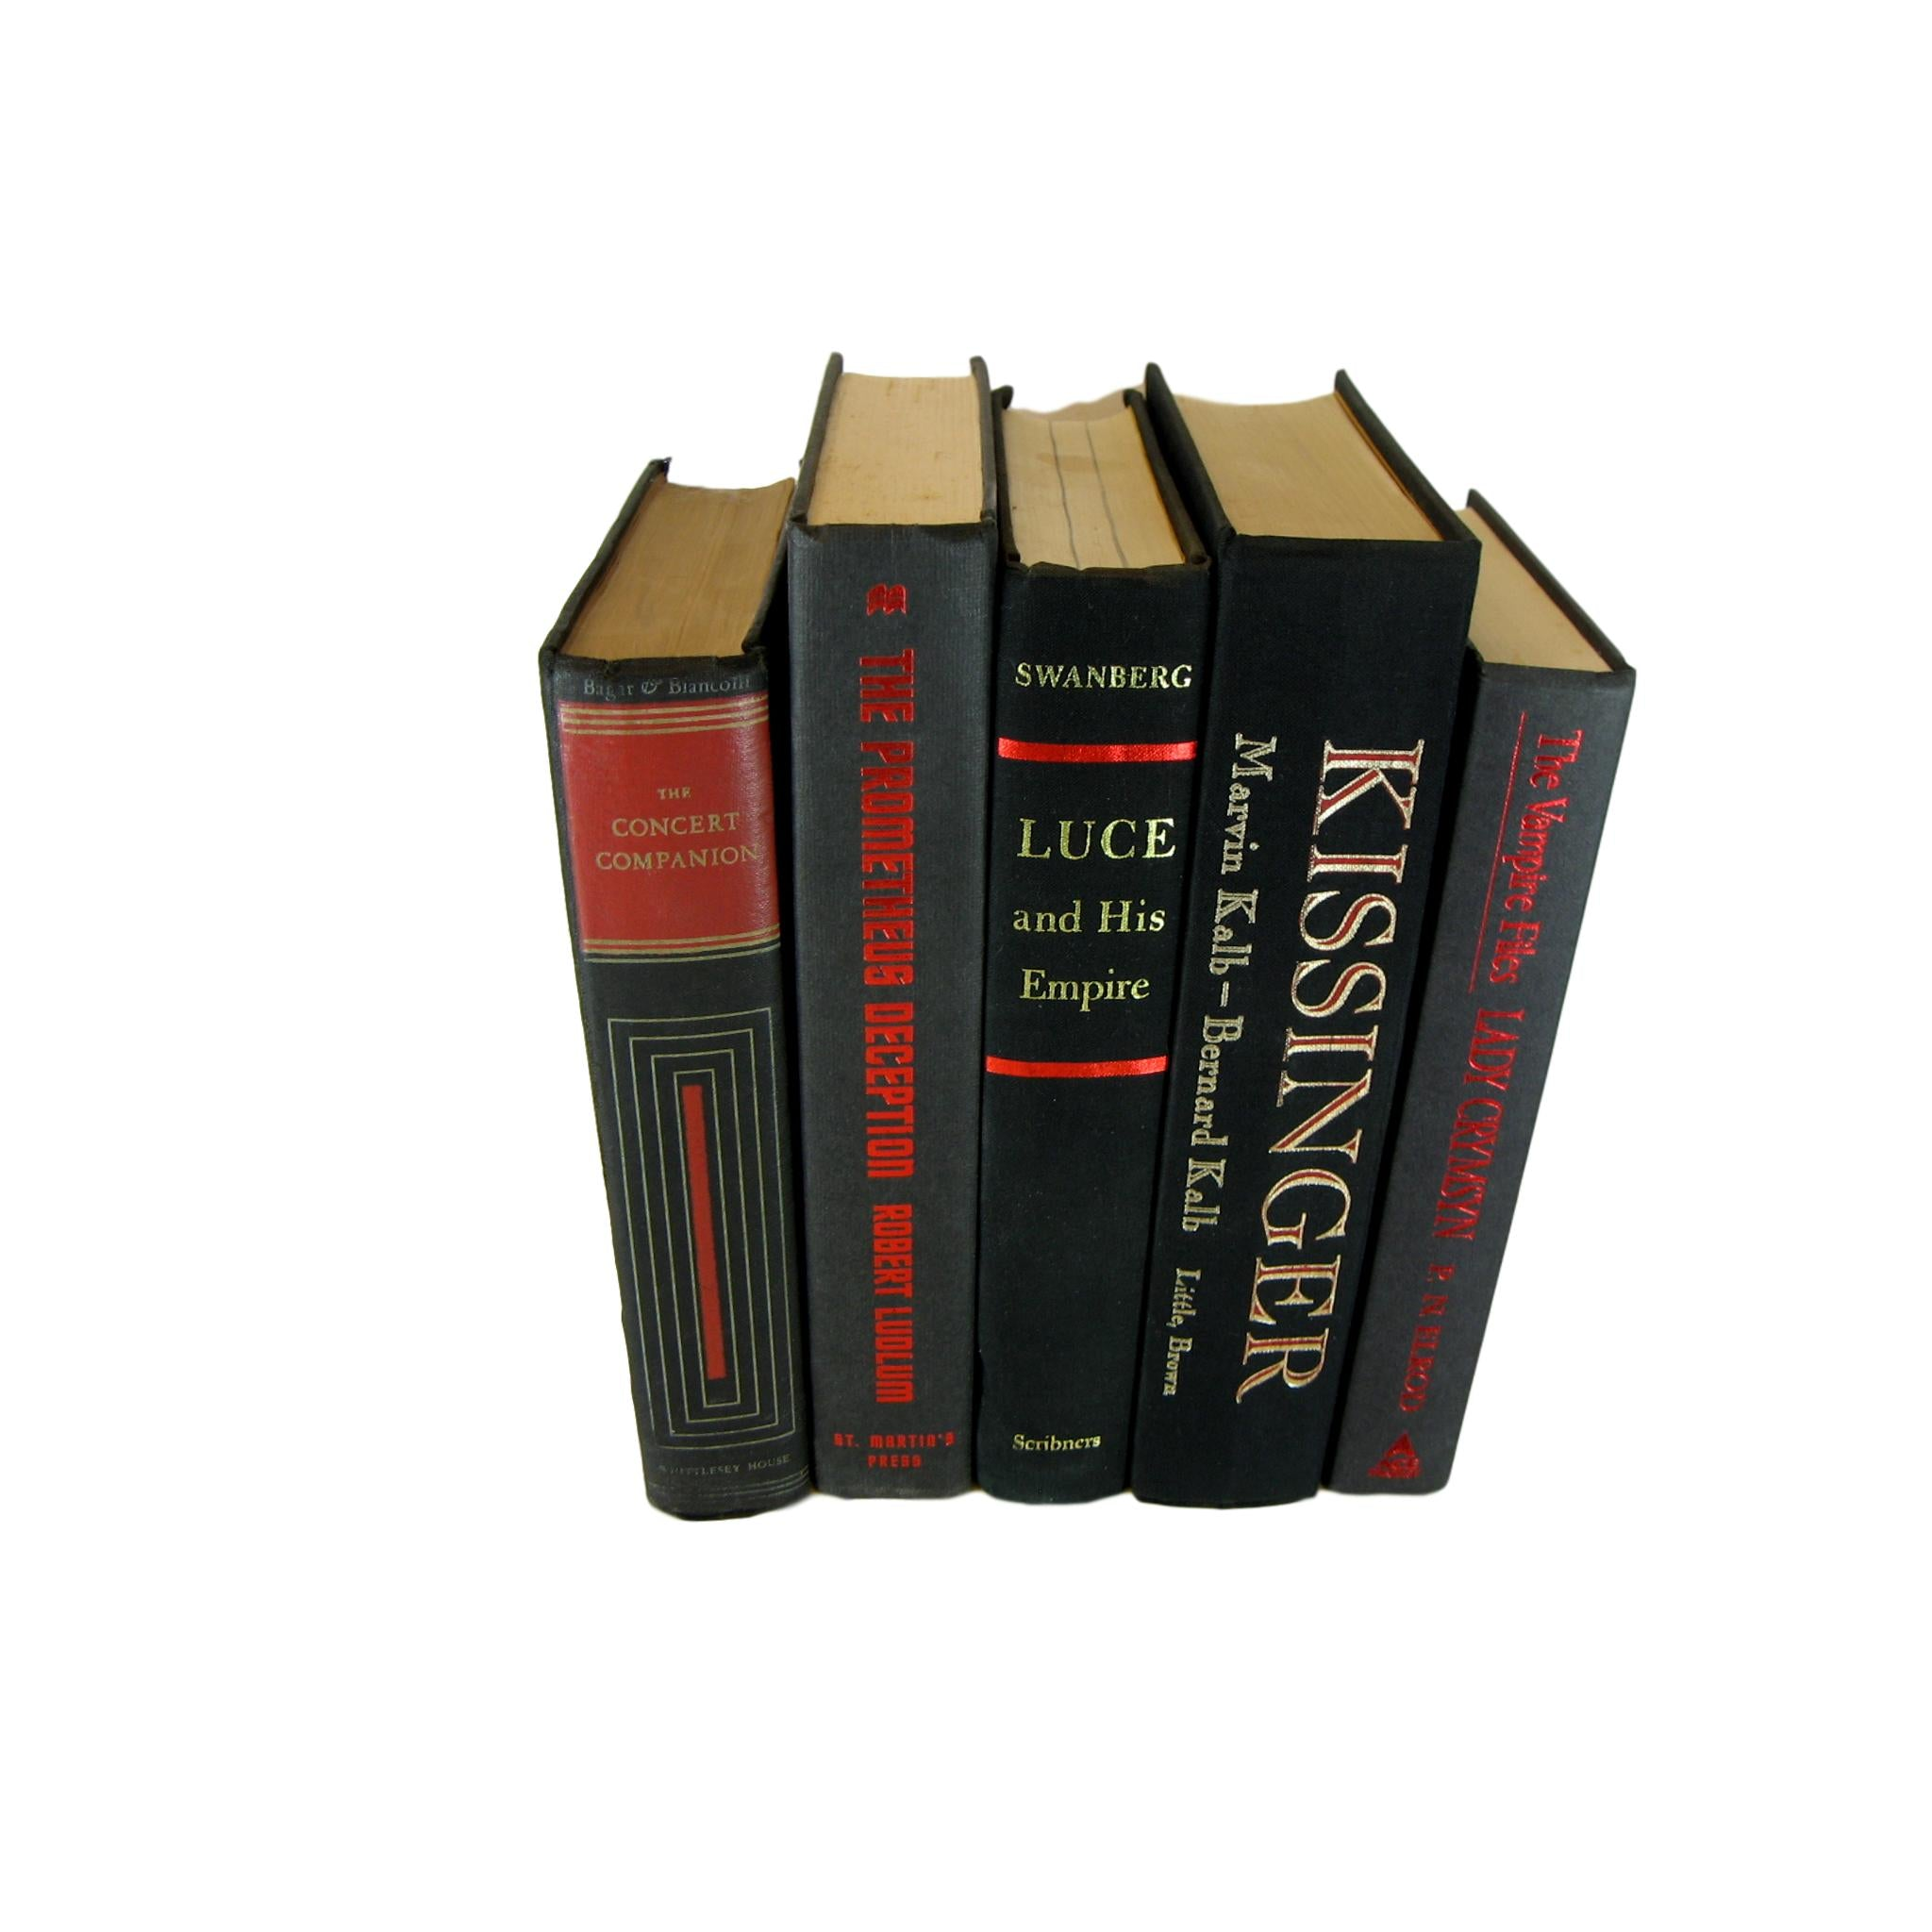 Black Books for Modern Bookshelf Decor, S/5 - Decades of Vintage